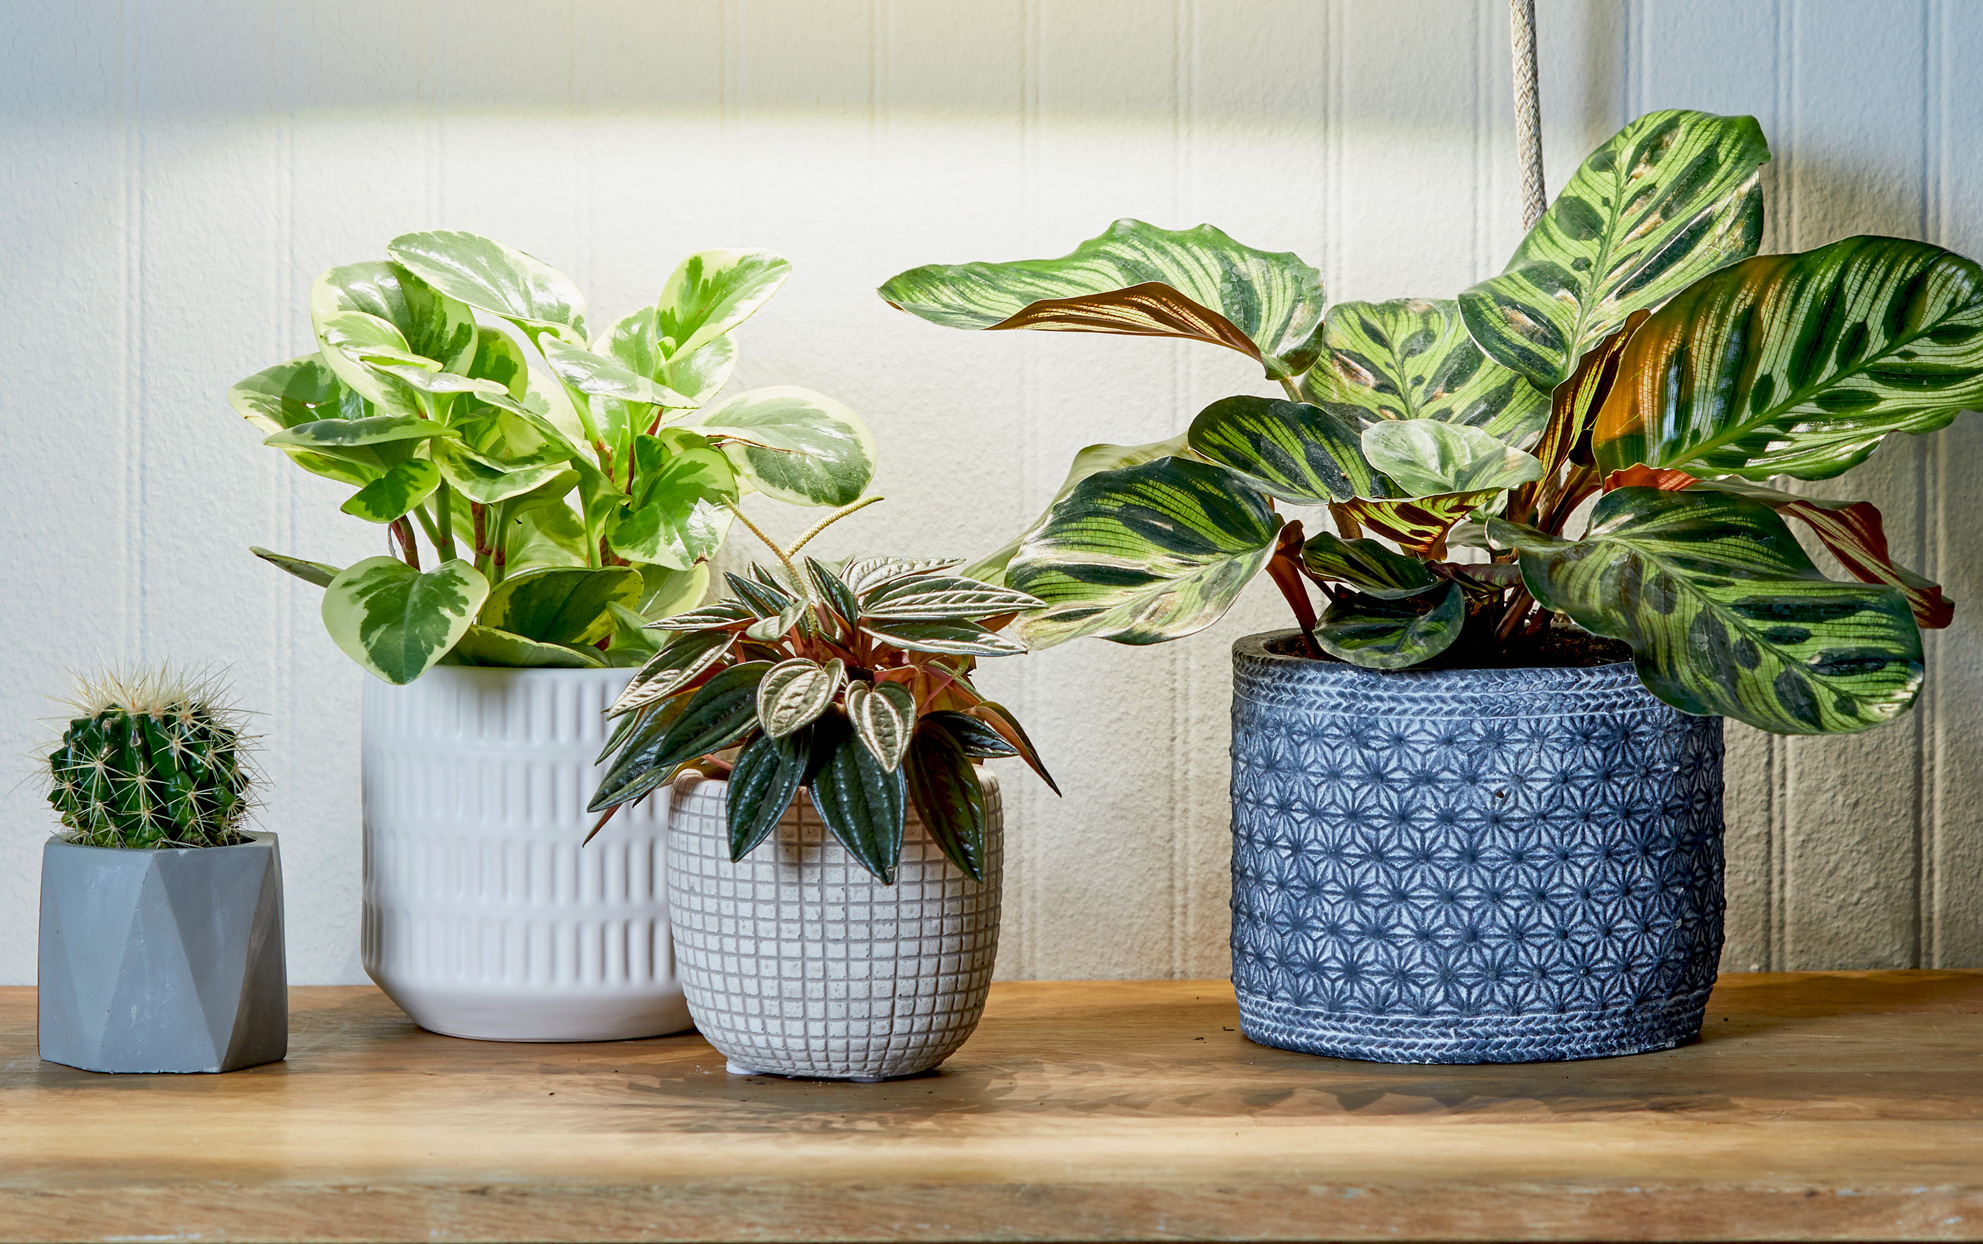 These 6 Popular Houseplants Each Have Special Meanings Behind Them